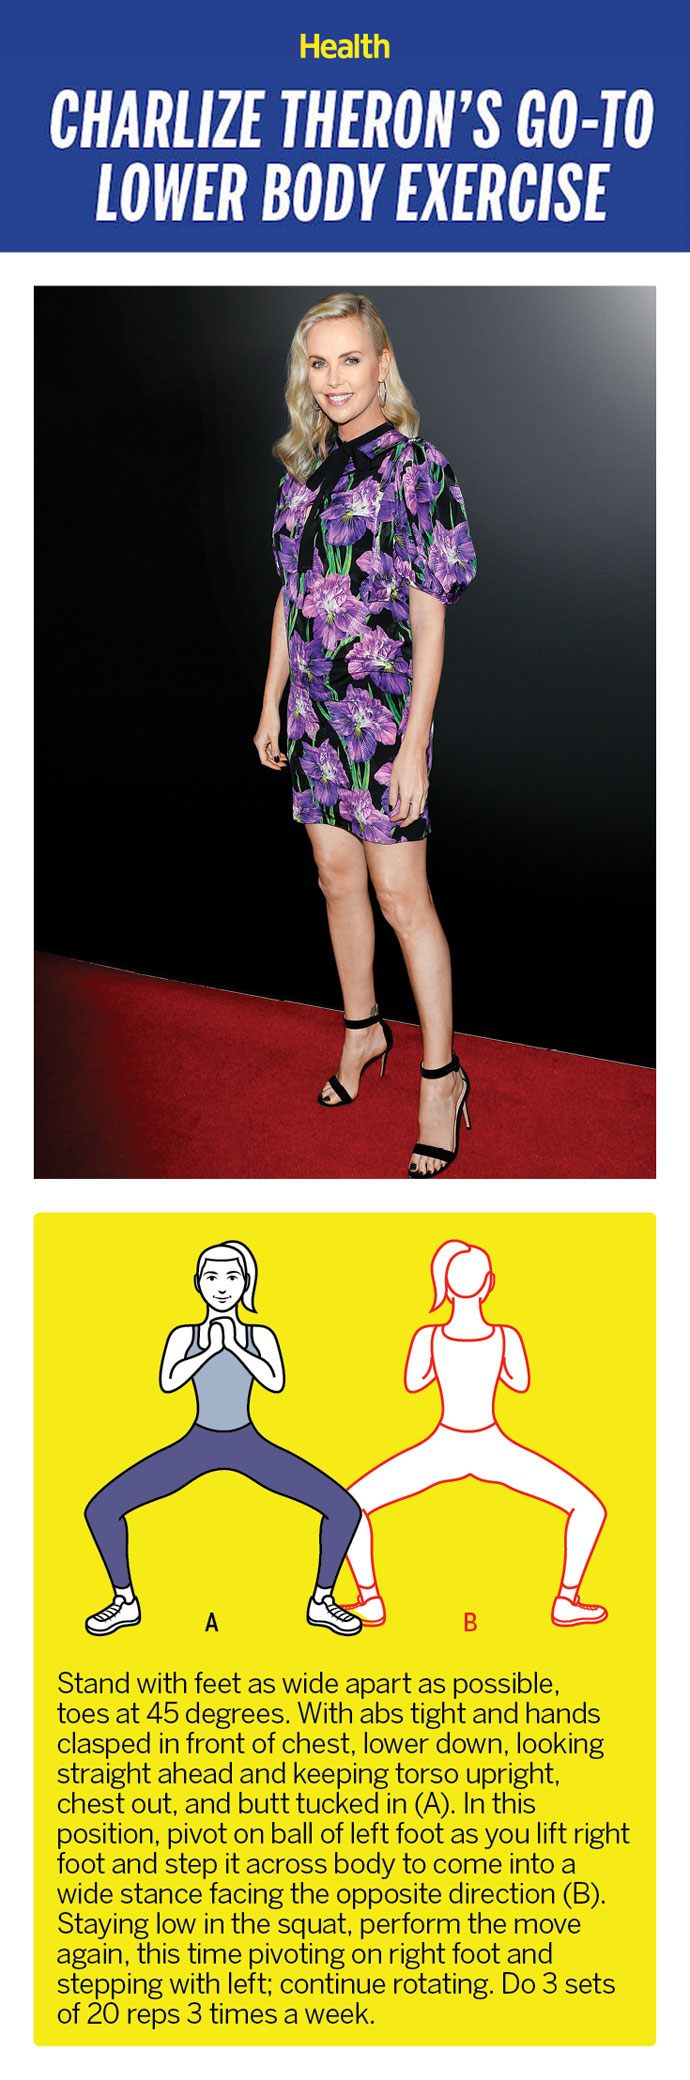 charlize-theron-exercise-graphic